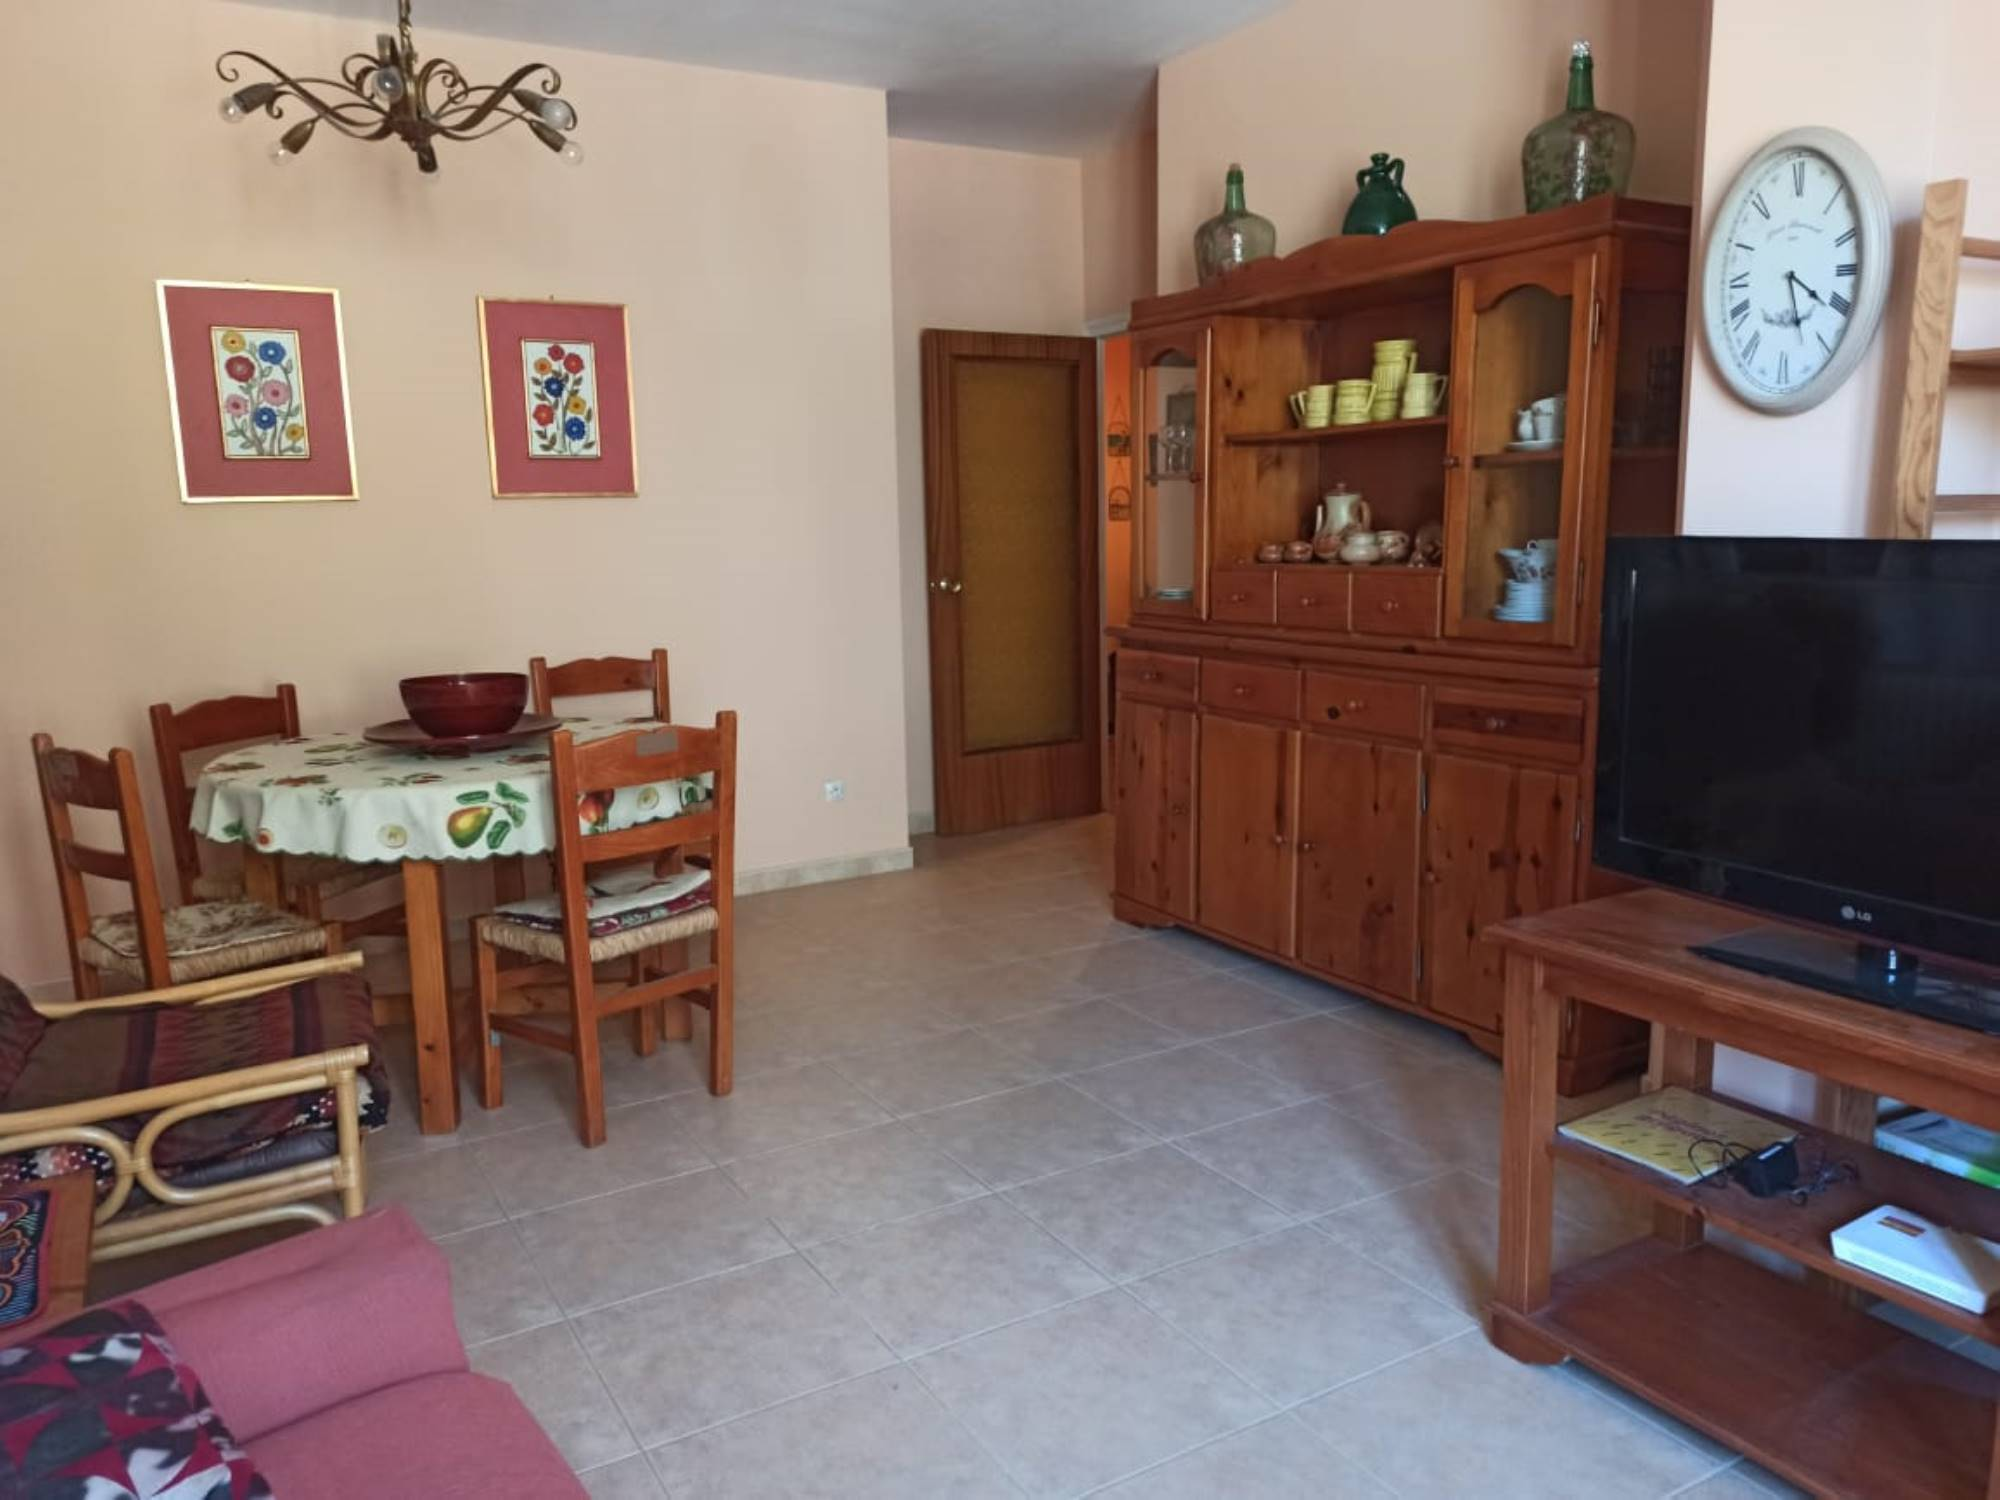 Apartment for Rent in Sant Julià de Lòria